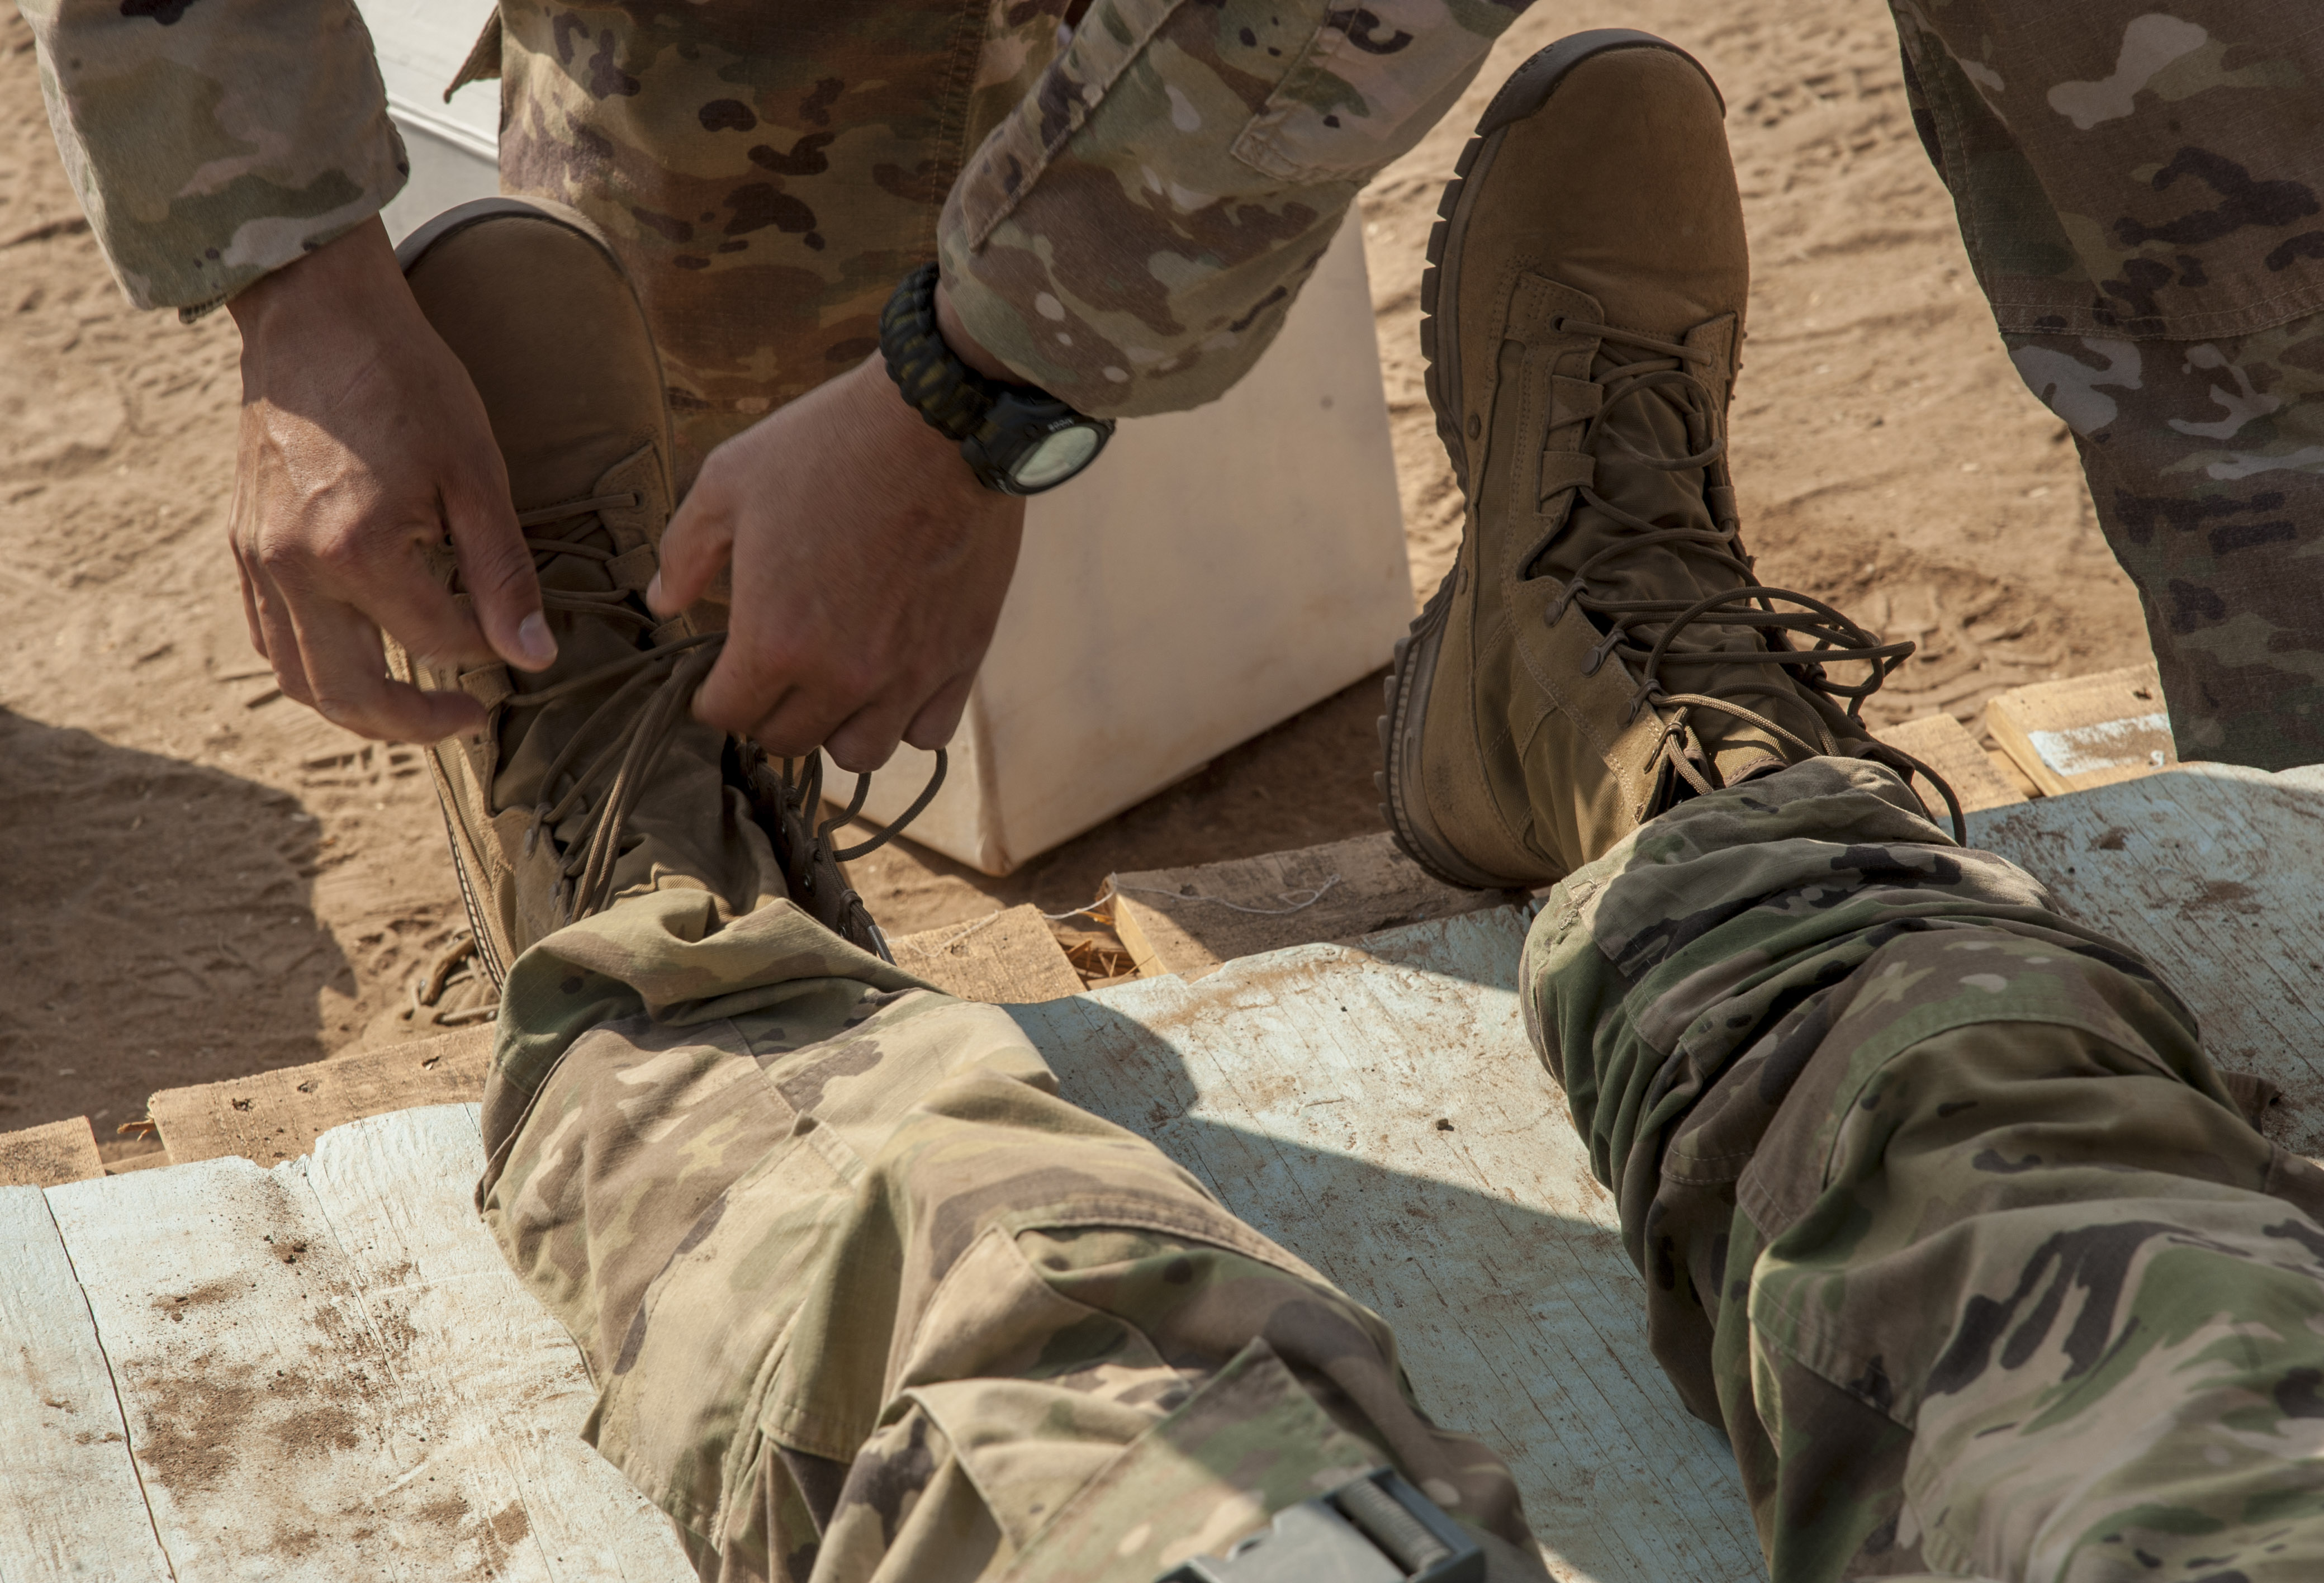 A U.S. Army Soldier assigned to Combined Joint Task Force - Horn of Africa loosens the boots of a simulated heat casualty during training for an Expert Infantryman Badge (EIB) evaluation at Camp Lemonnier, Djibouti, Jan. 23, 2018. The EIB is a coveted special skills badge that requires infantry Soldiers to pass a five-day evaluation that consists of an Army Physical Fitness Test, day and night land navigation, a 12-mile forced march, and 30 individual tasks covering weapons, medical, and security patrol skills. In an April 2016 EIB iteration at Camp Lemonnier, only 15 percent of candidates earned the badge. (U.S. Air Force photo by Staff Sgt. Timothy Moore)